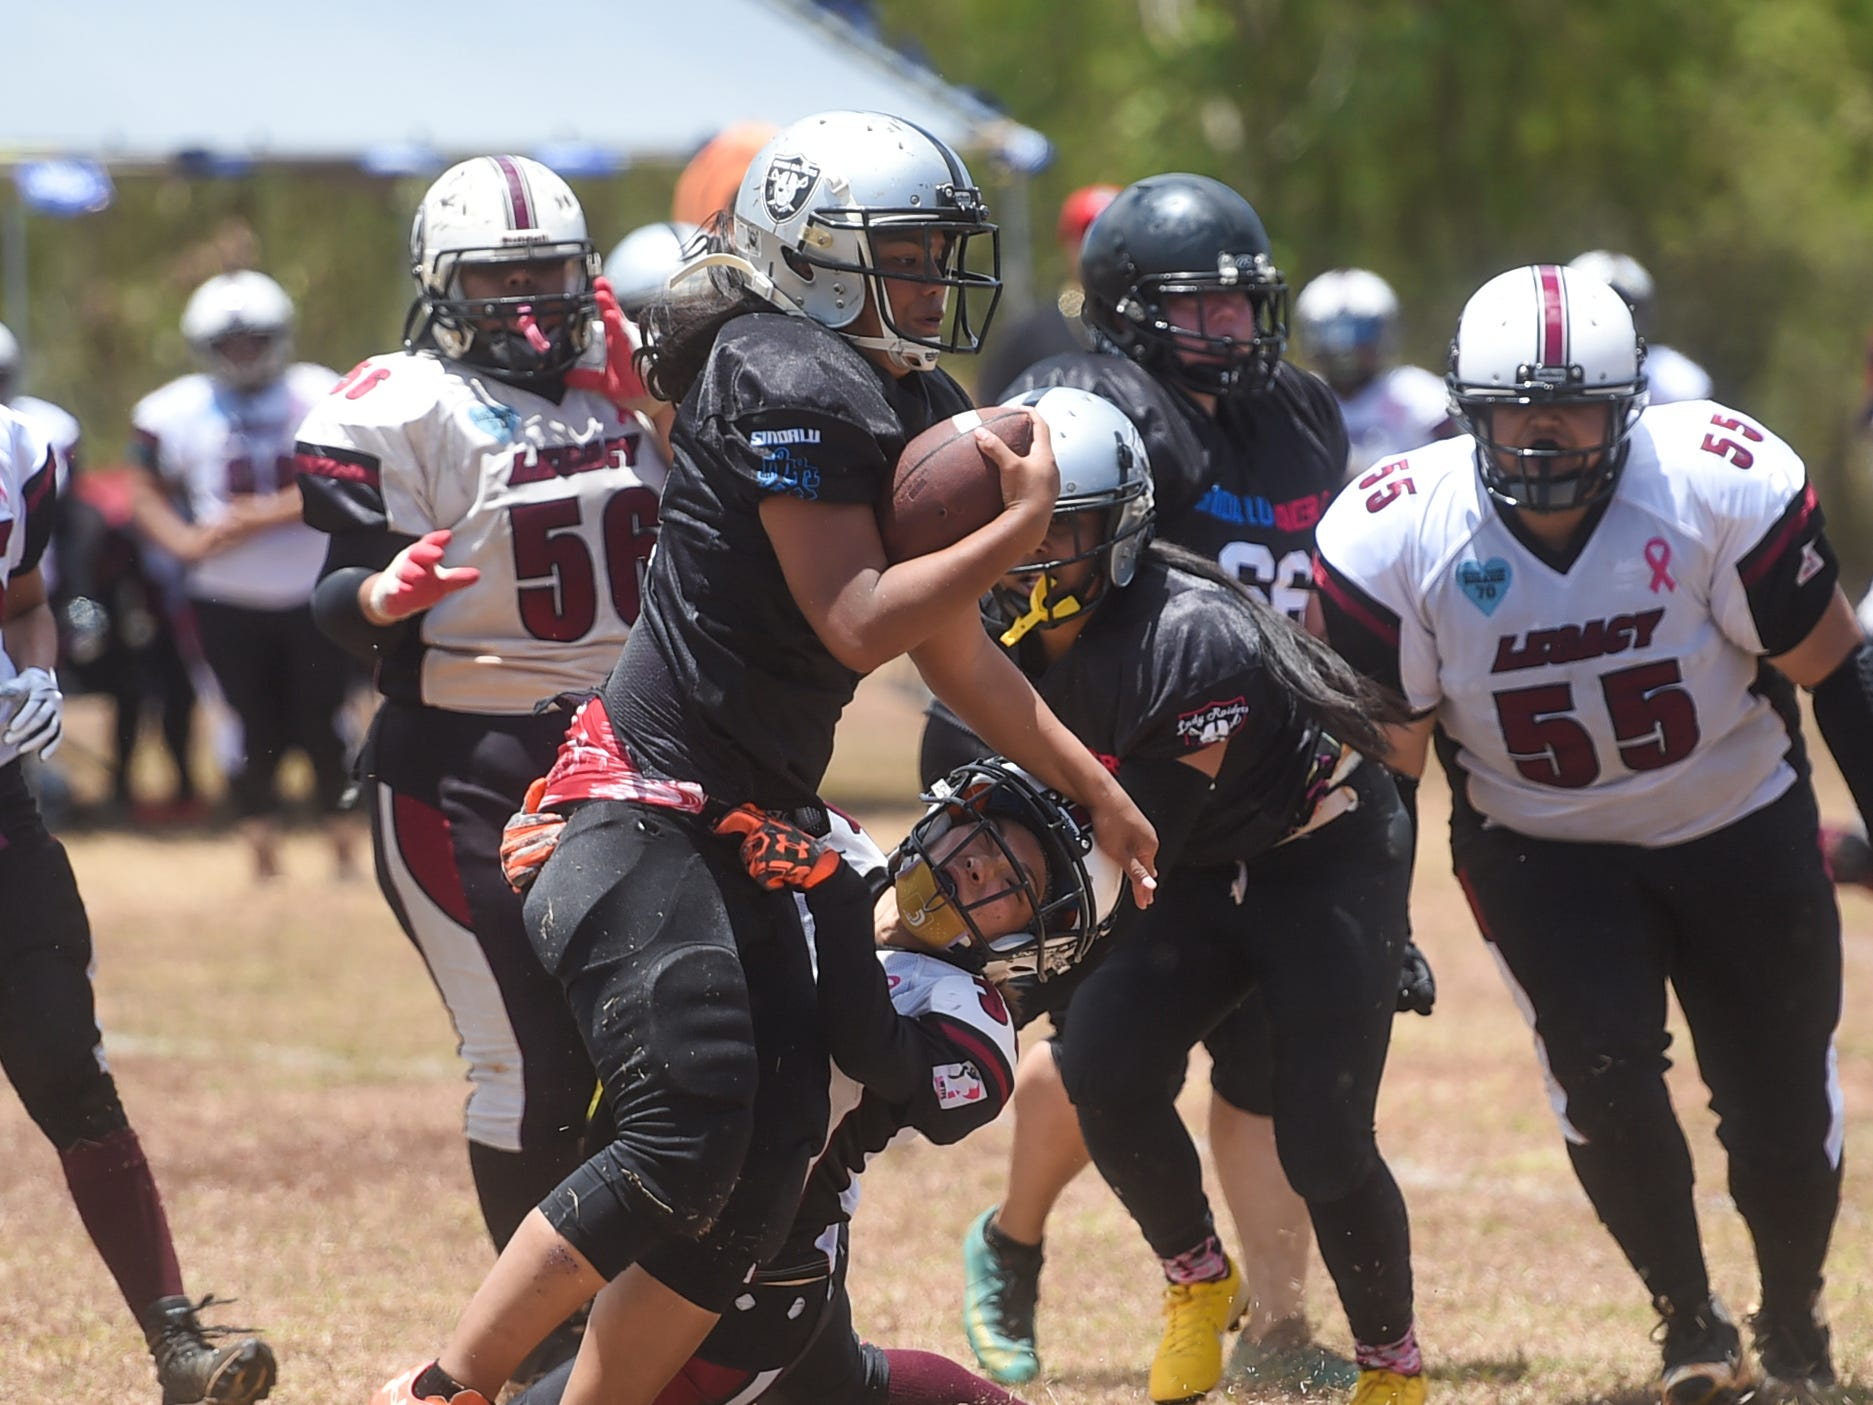 Sindalu/Raiders player Leticia Blas attempts to break a tackle against Legacy's Kaylani Plain Cruz during their 2019 Bud Light GWTFL game at the University of Guam Field in Mangilao, May 11, 2019. Legacy came away with a 20-0 victory for their second game of the season.